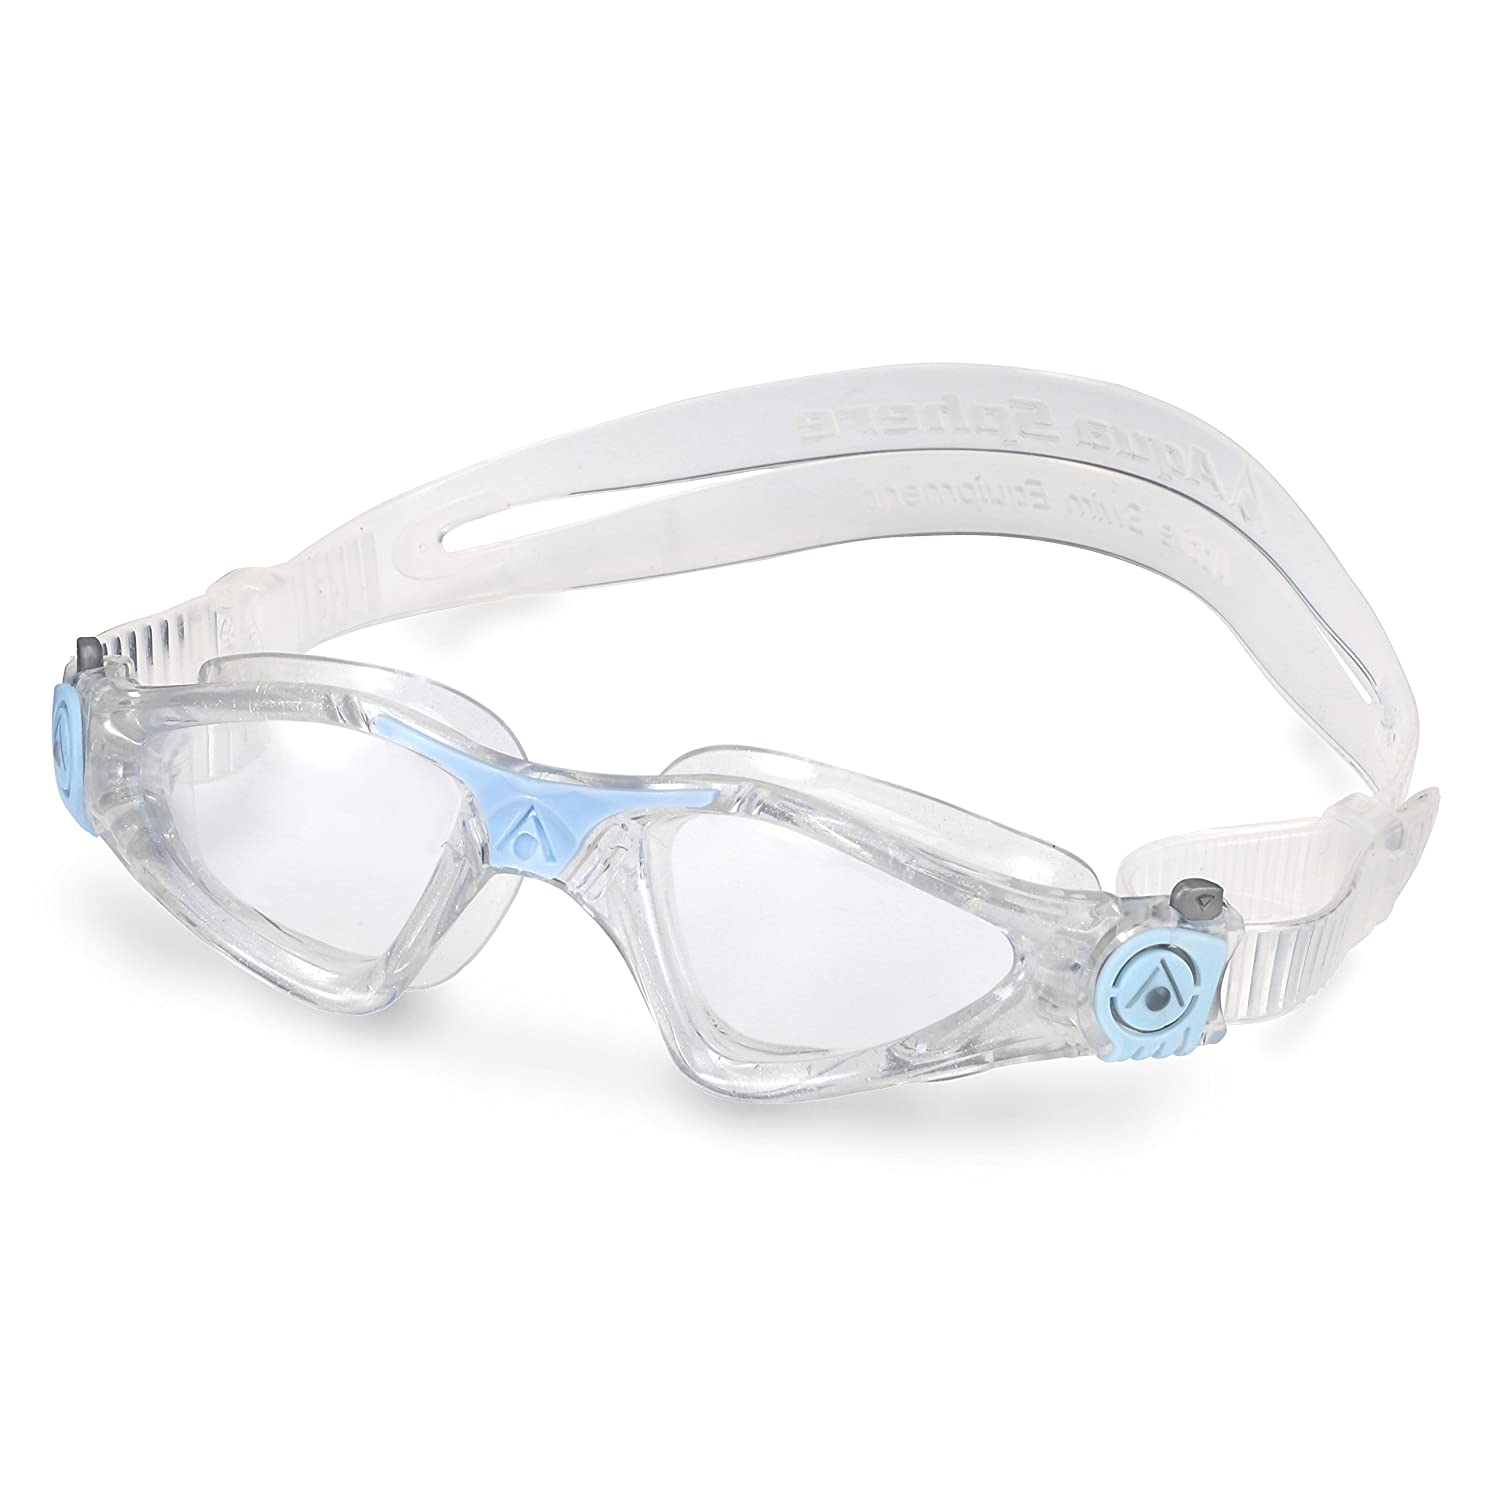 c5c8d86a636 Aqua Sphere Kayenne Ladies Swimming Goggles - Made in Italy - UV Protection  Anti Fog Swim